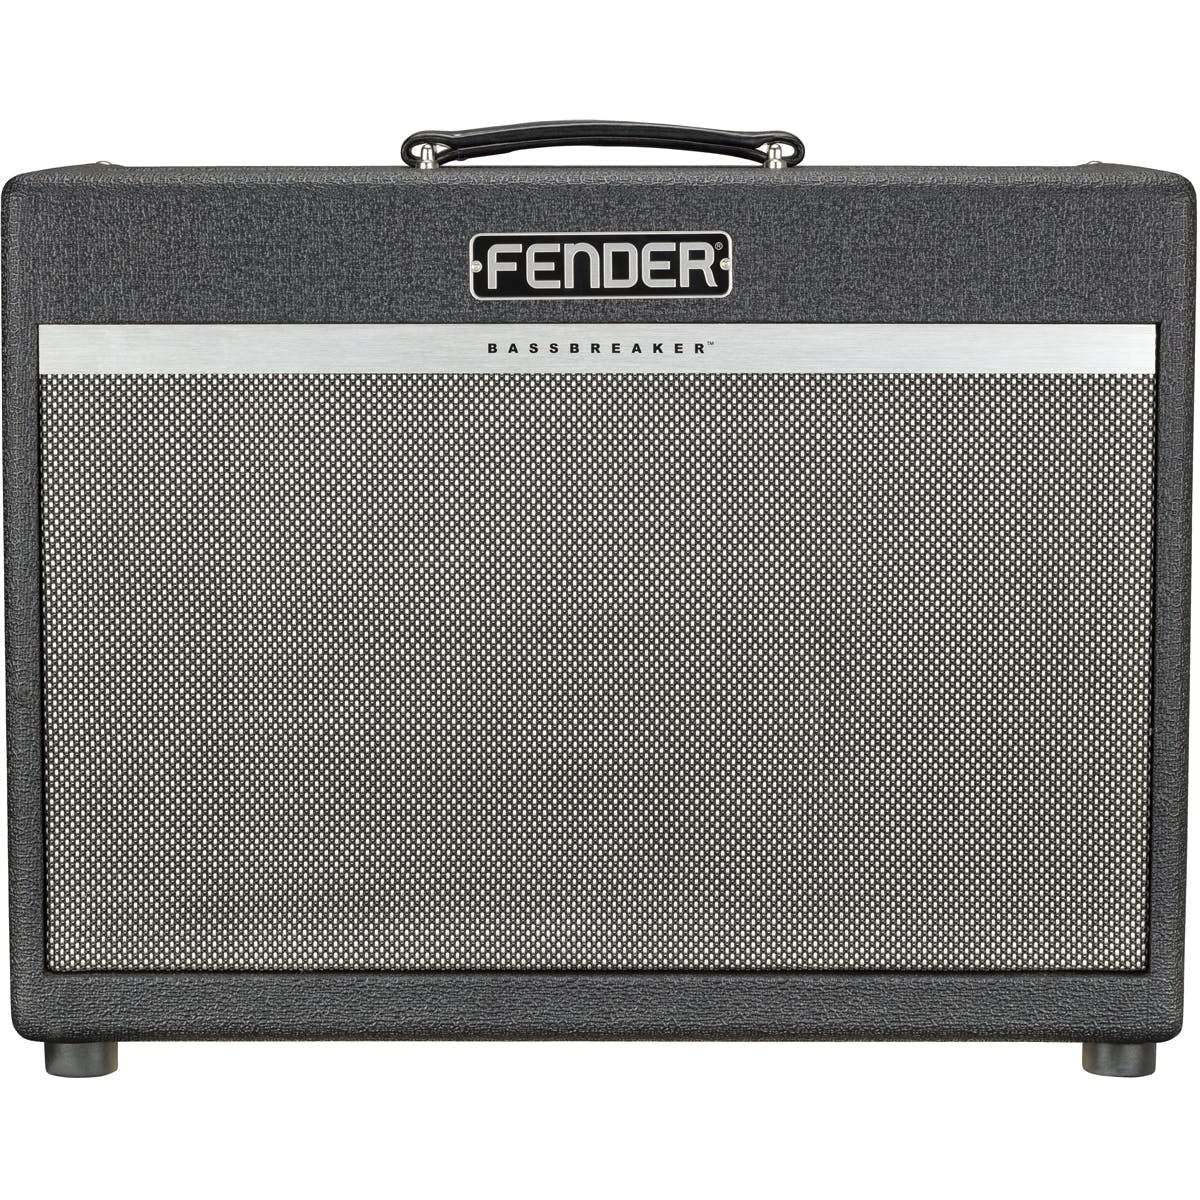 "Fender Bassbreaker 30R 30-watt 1x12"" Tube Combo Amp with Reverb 